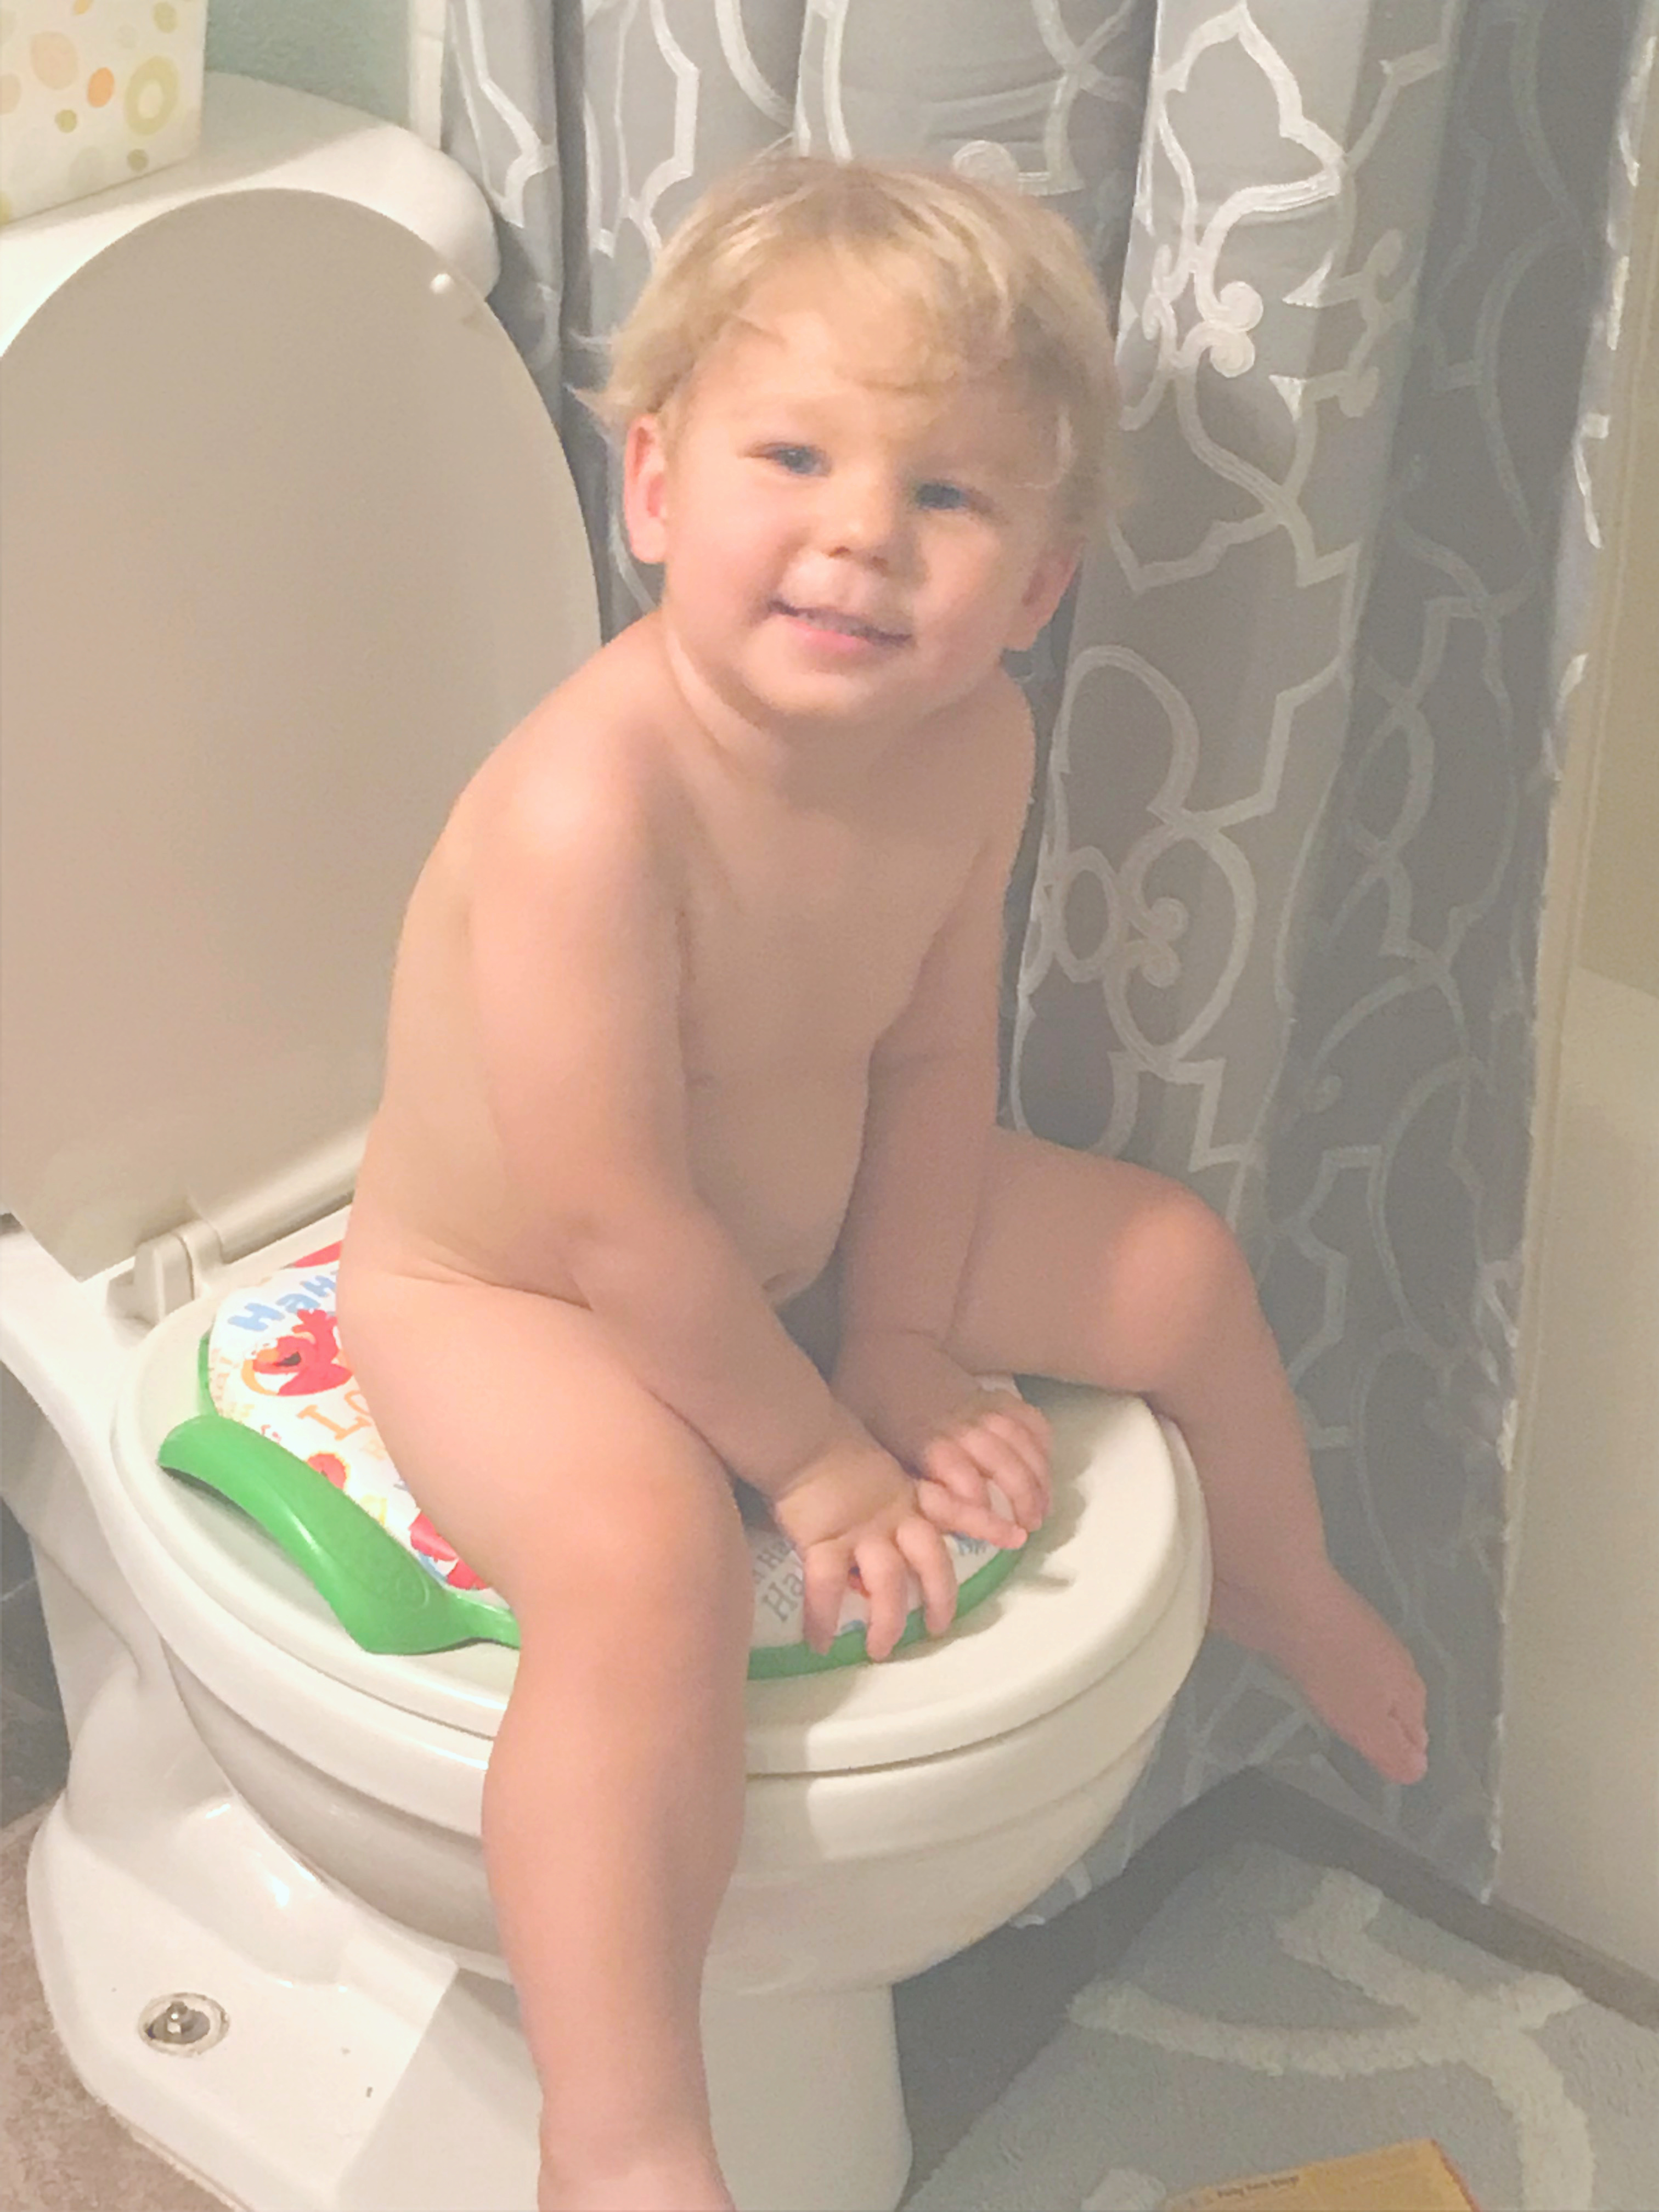 Ready to get rid of diapers? Ready to free yourself from the inconvenience of needing a diaper bag everywhere you go? Potty training your toddler now with these potty training tips and tricks for boys and girls. You can potty train your toddler now if you stick to this method!